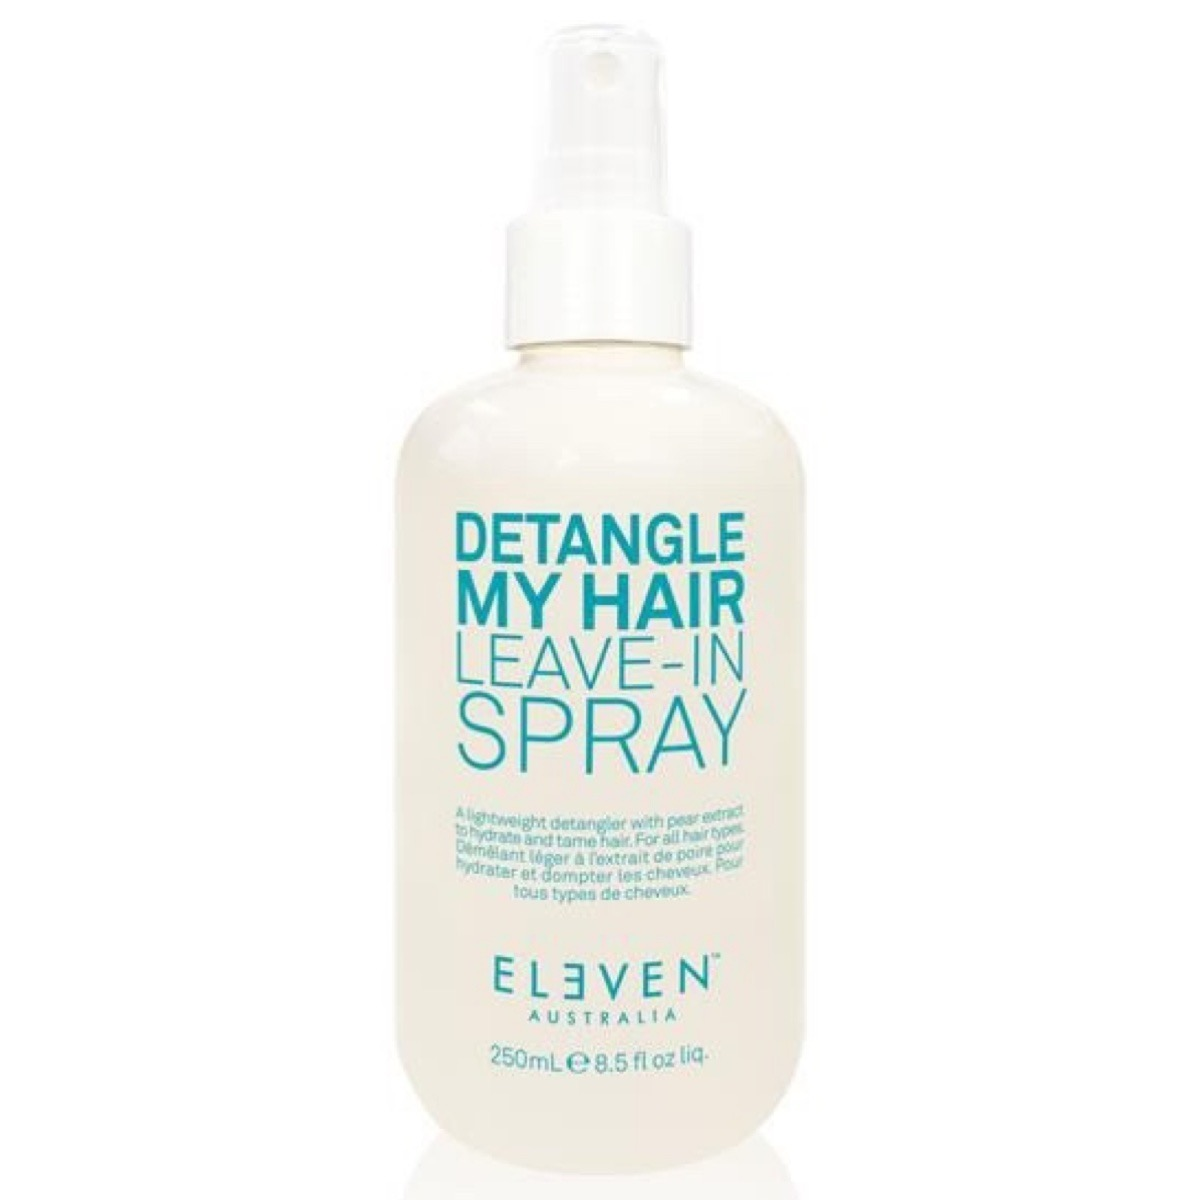 Eleven Detangle my hair leave in spray